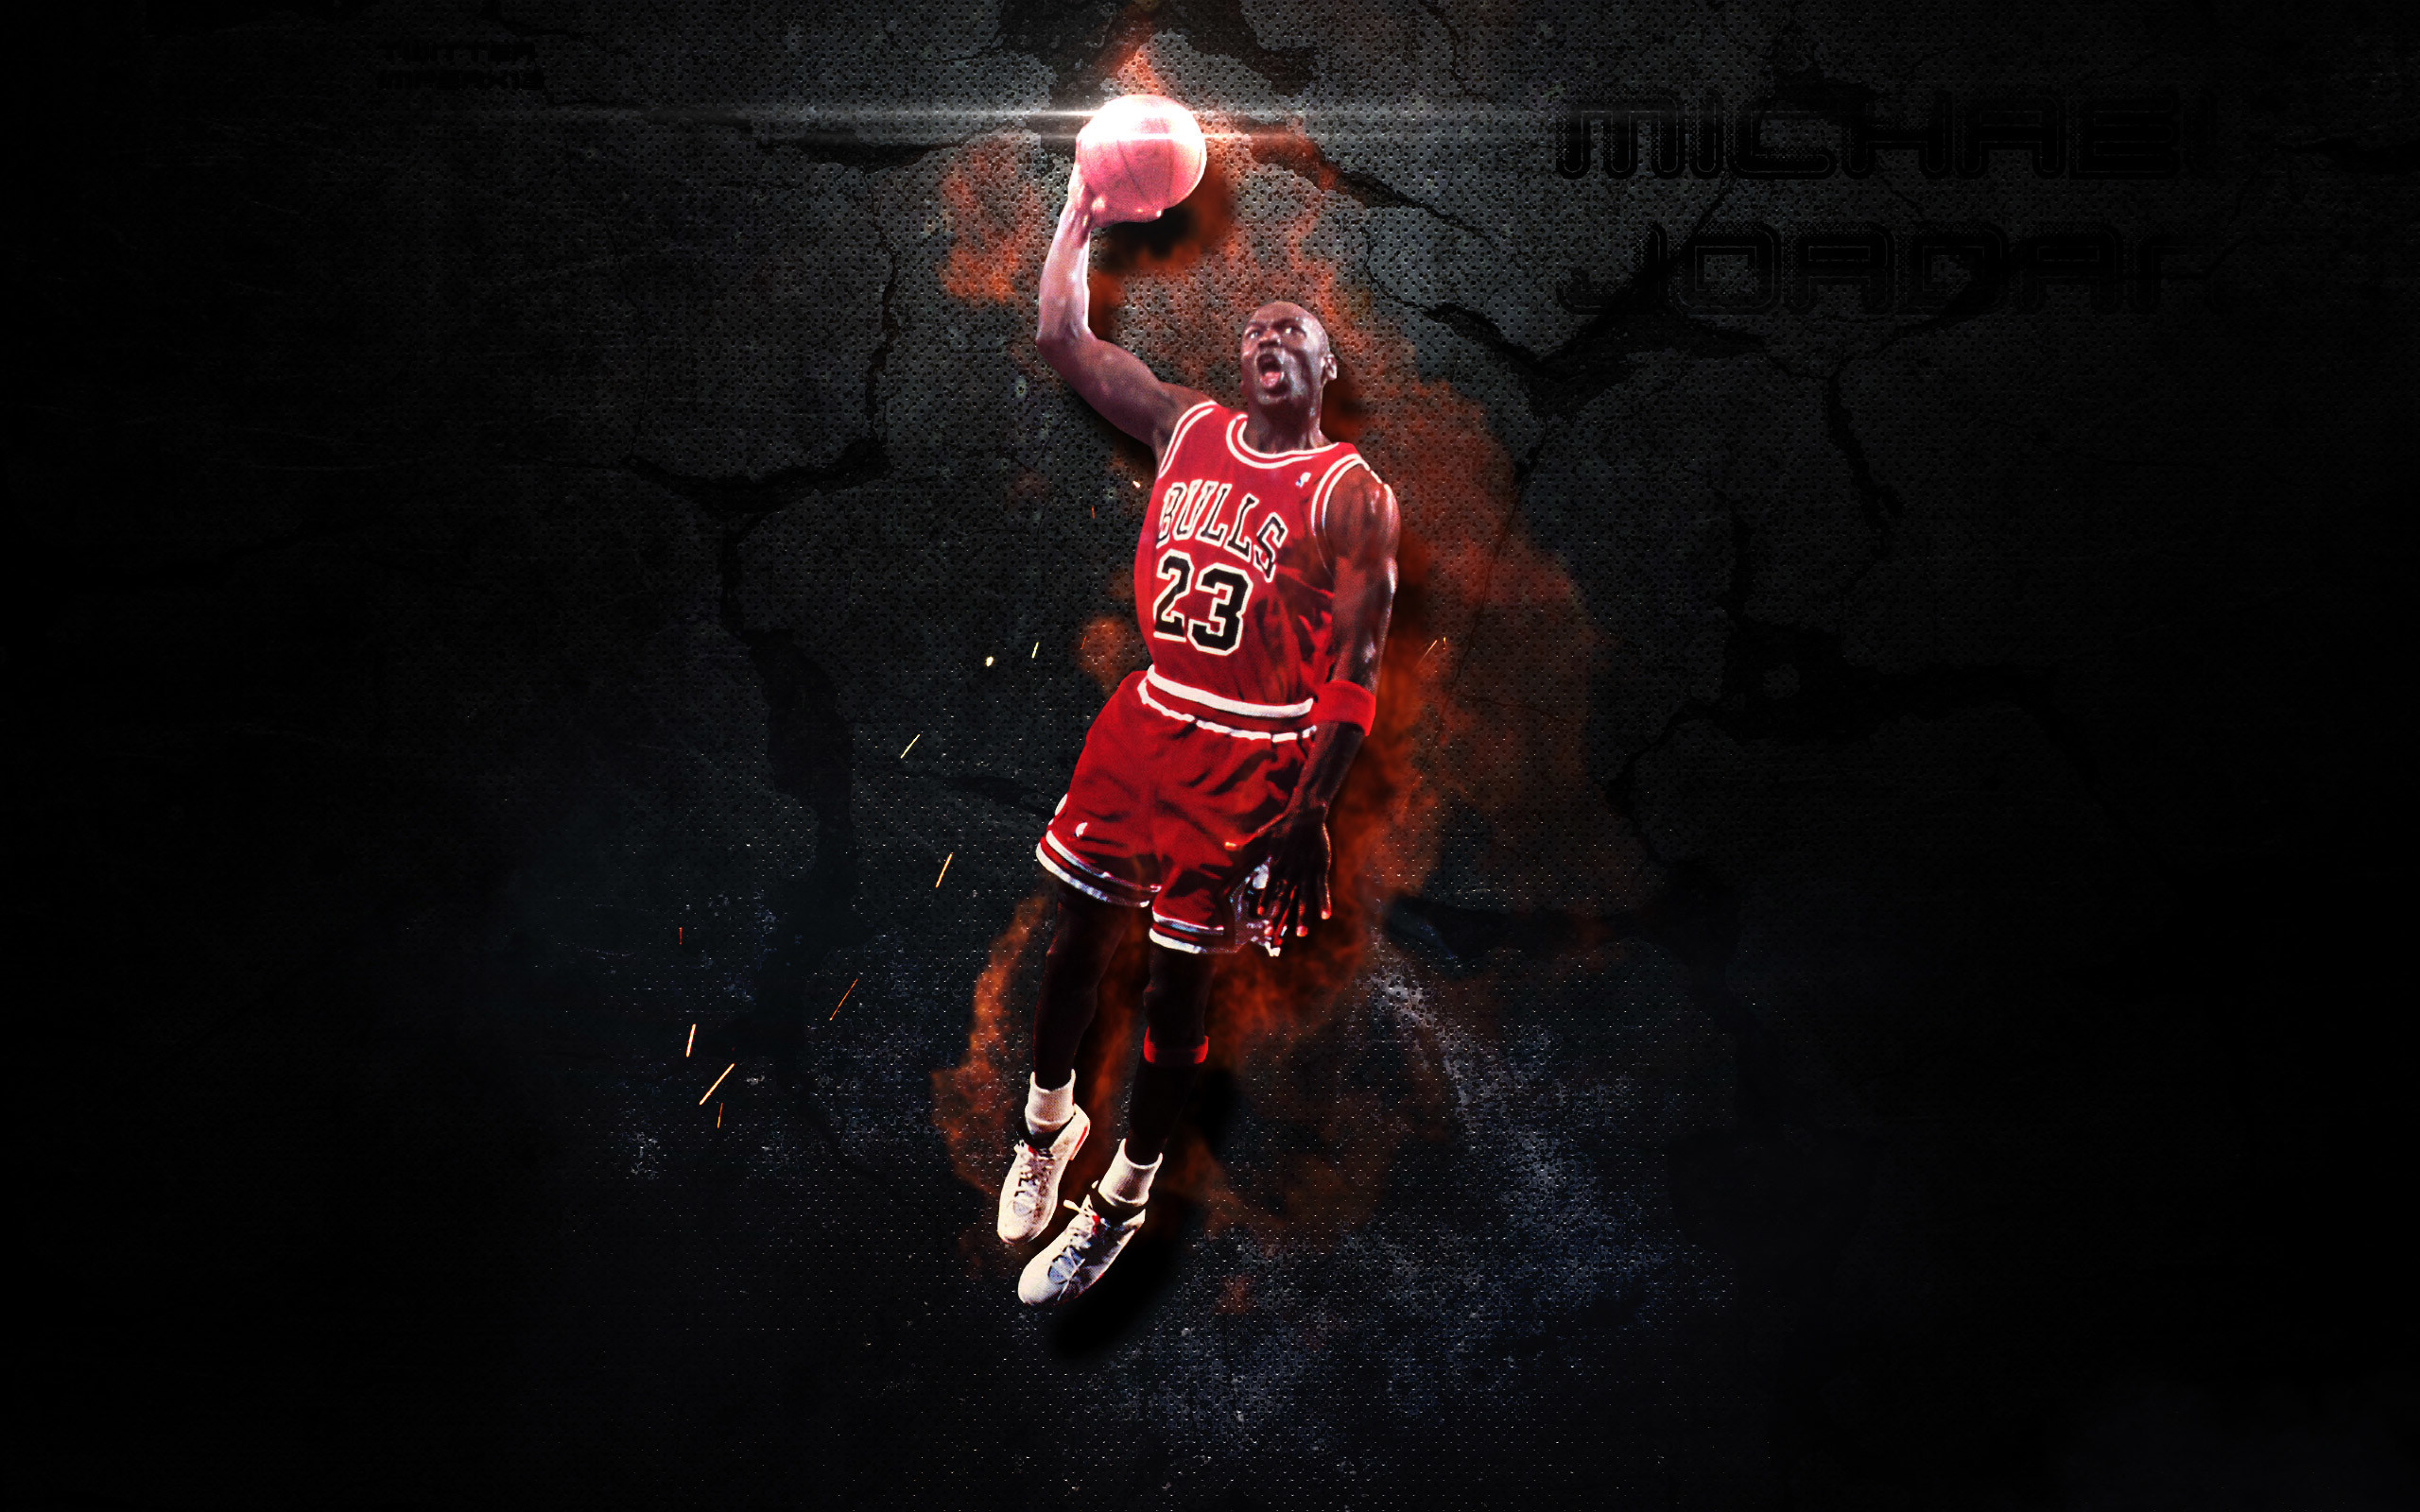 2560x1600 michael jordan wallpaper hd hd background wallpapers free amazing cool  tablet 4k high definition 2560×1600 Wallpaper HD